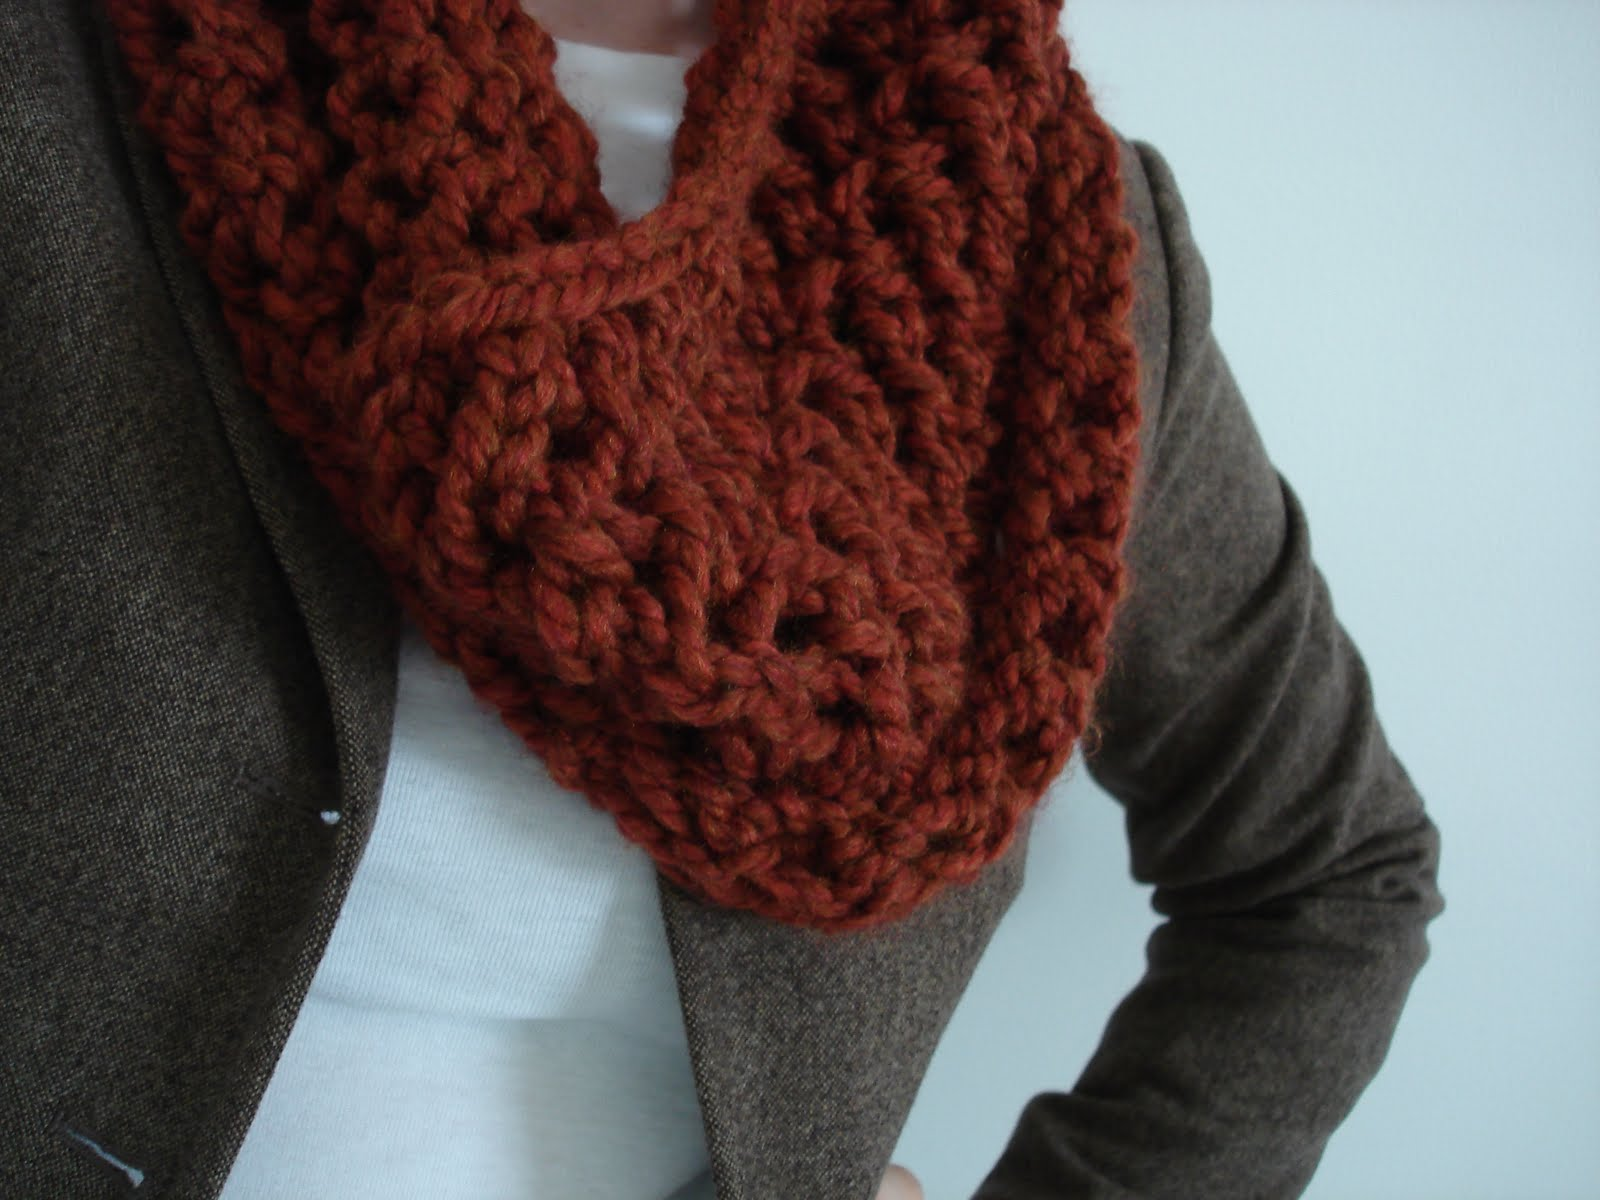 Free Knitting Patterns For Cowl Neck Scarves : Fiber Flux: Free Knitting Pattern...Spice Cowl!